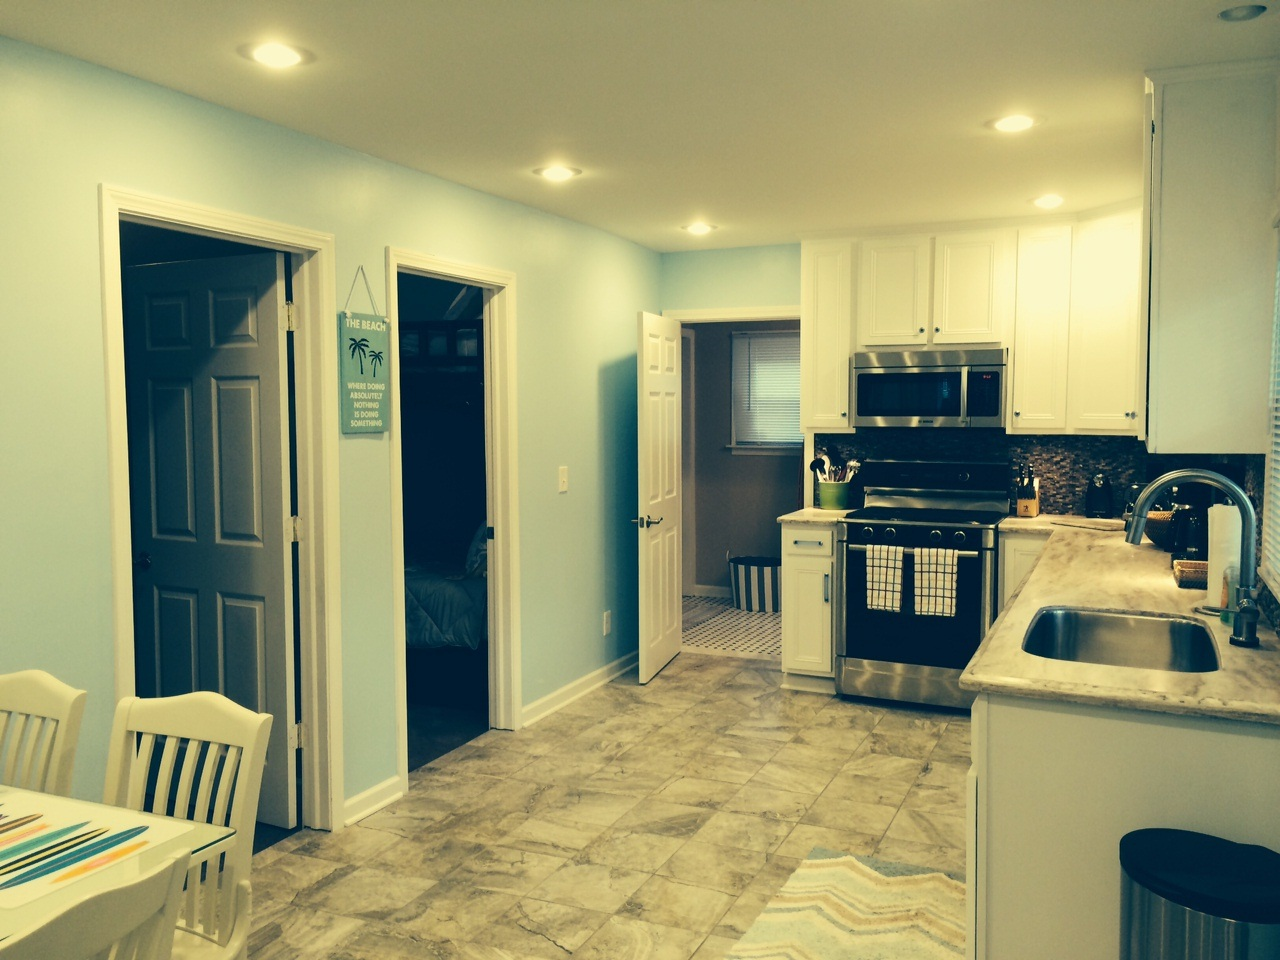 Kitchen Area and Doors to the Bedrooms and Bathroom